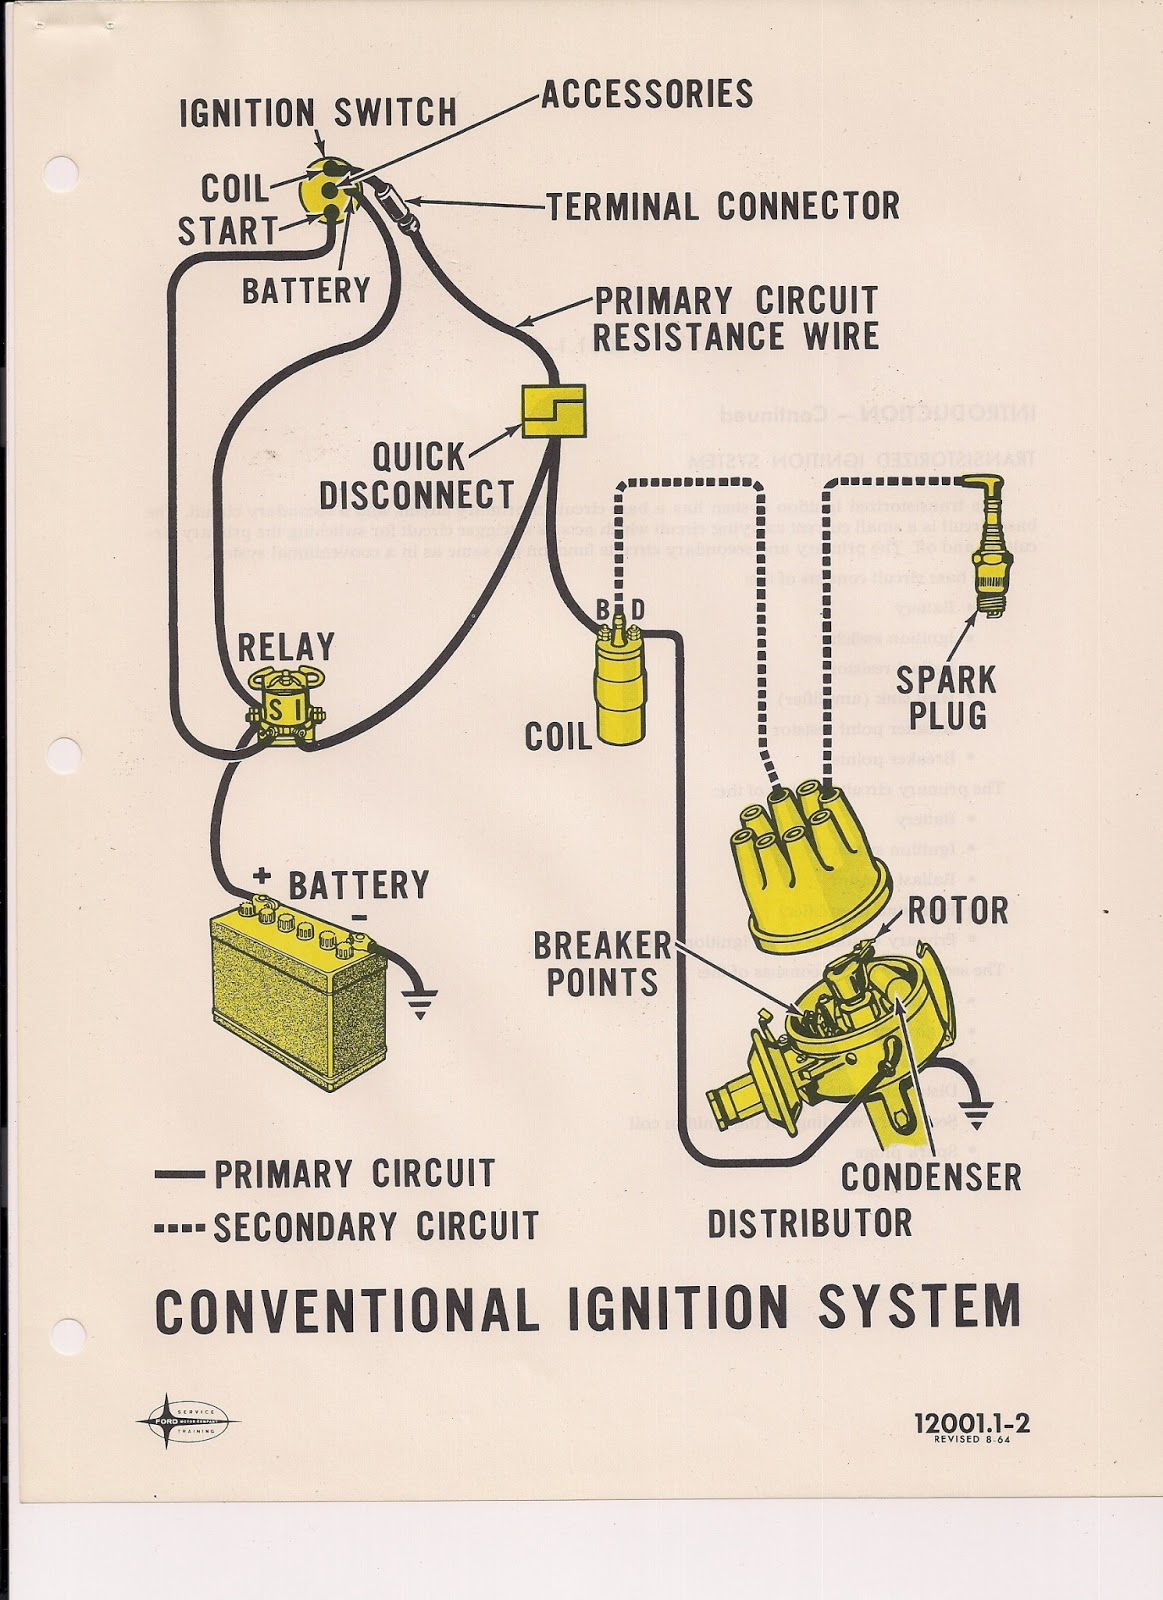 Ignition+1 the care and feeding of ponies mustang ignition system 1965 and 1966 1968 mustang ignition wiring diagram at n-0.co